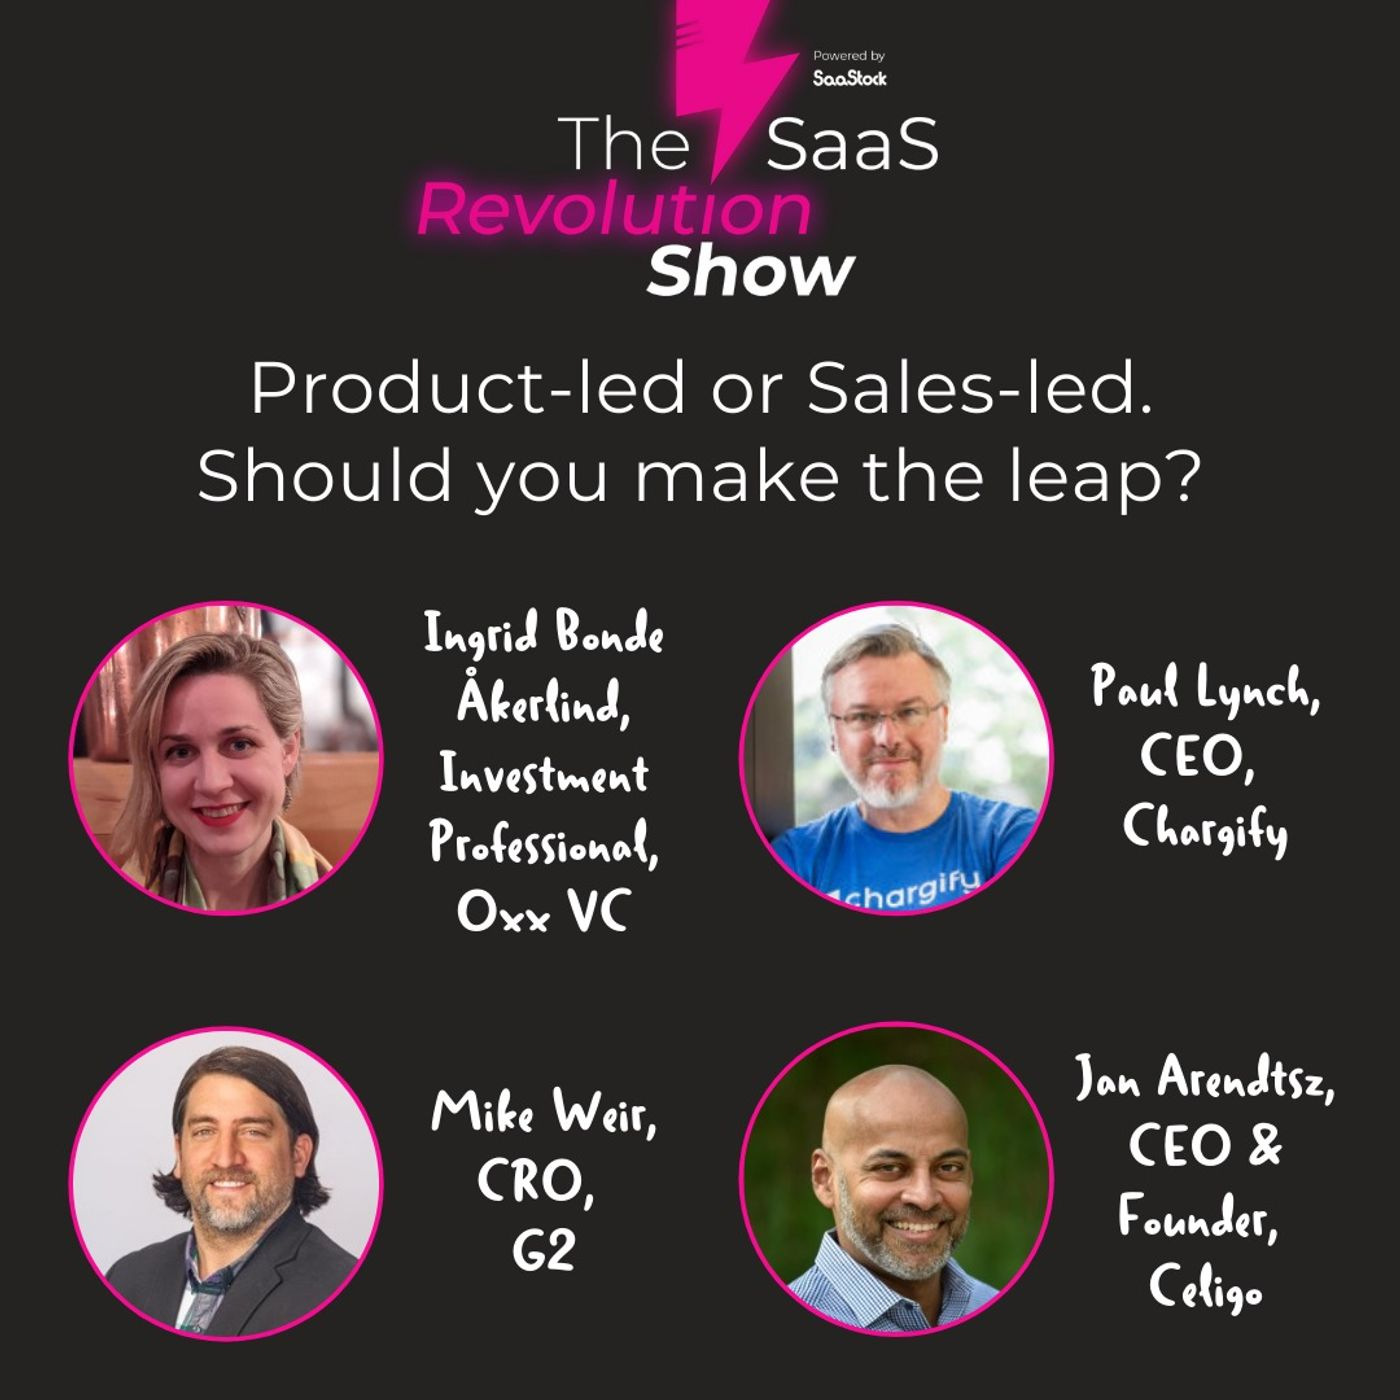 Product-led or Sales-led. Should you make the leap?